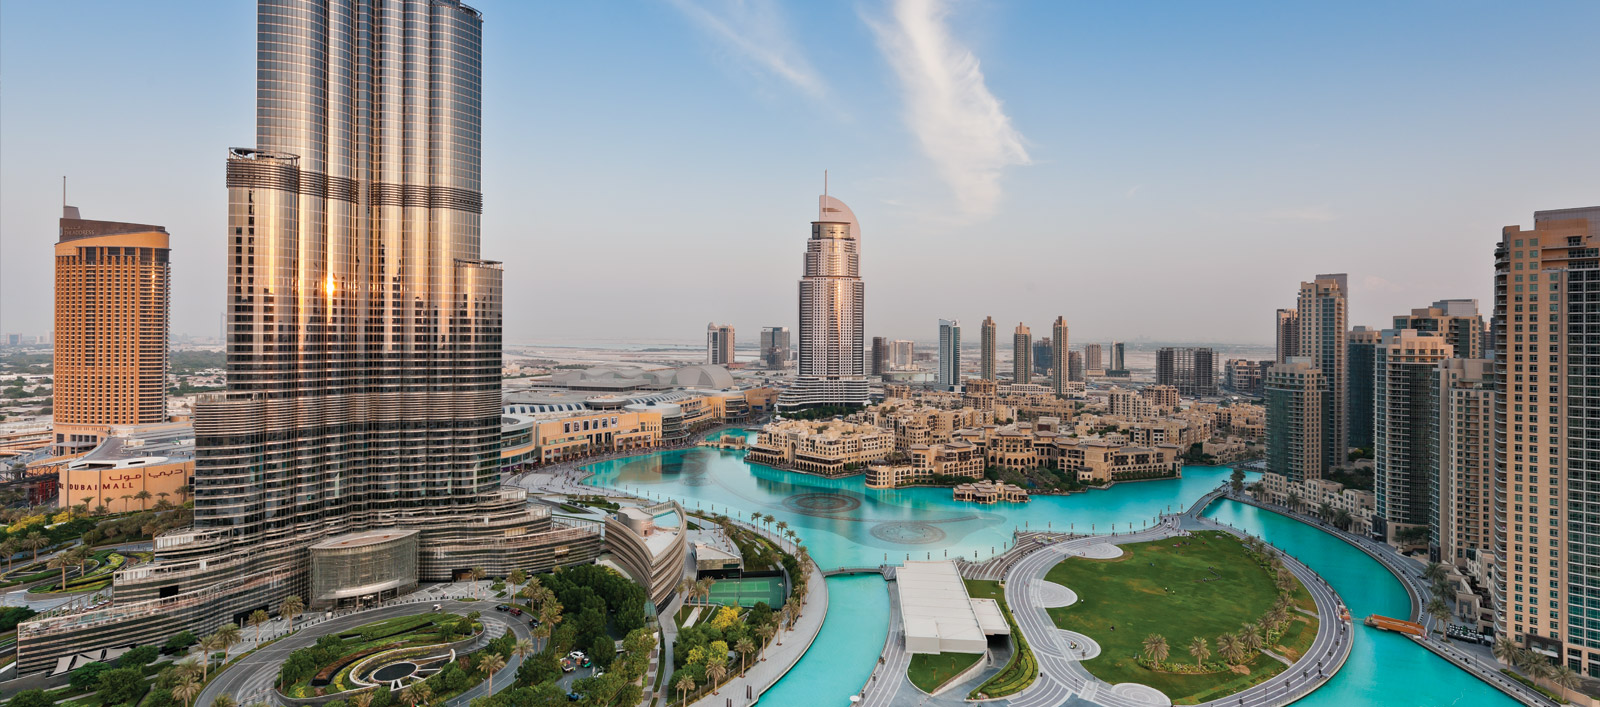 Downtown Dubai, One of Dubai's Most Iconic Neighborhoods